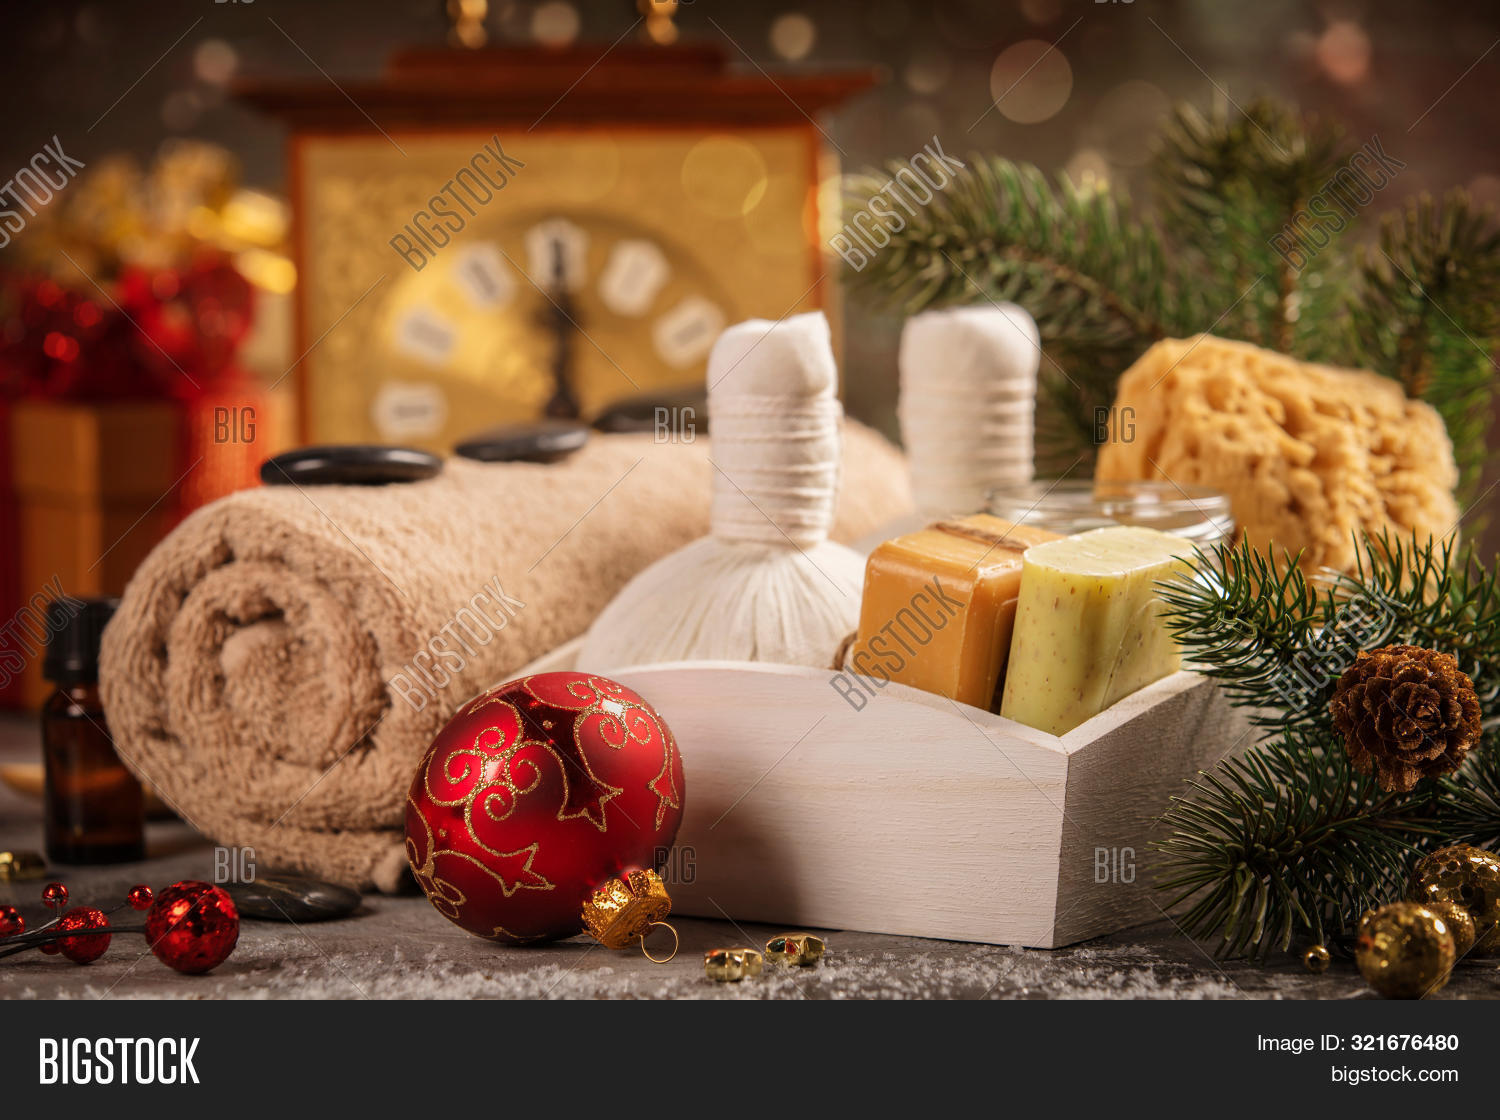 Spa Composition Image Photo Free Trial Bigstock